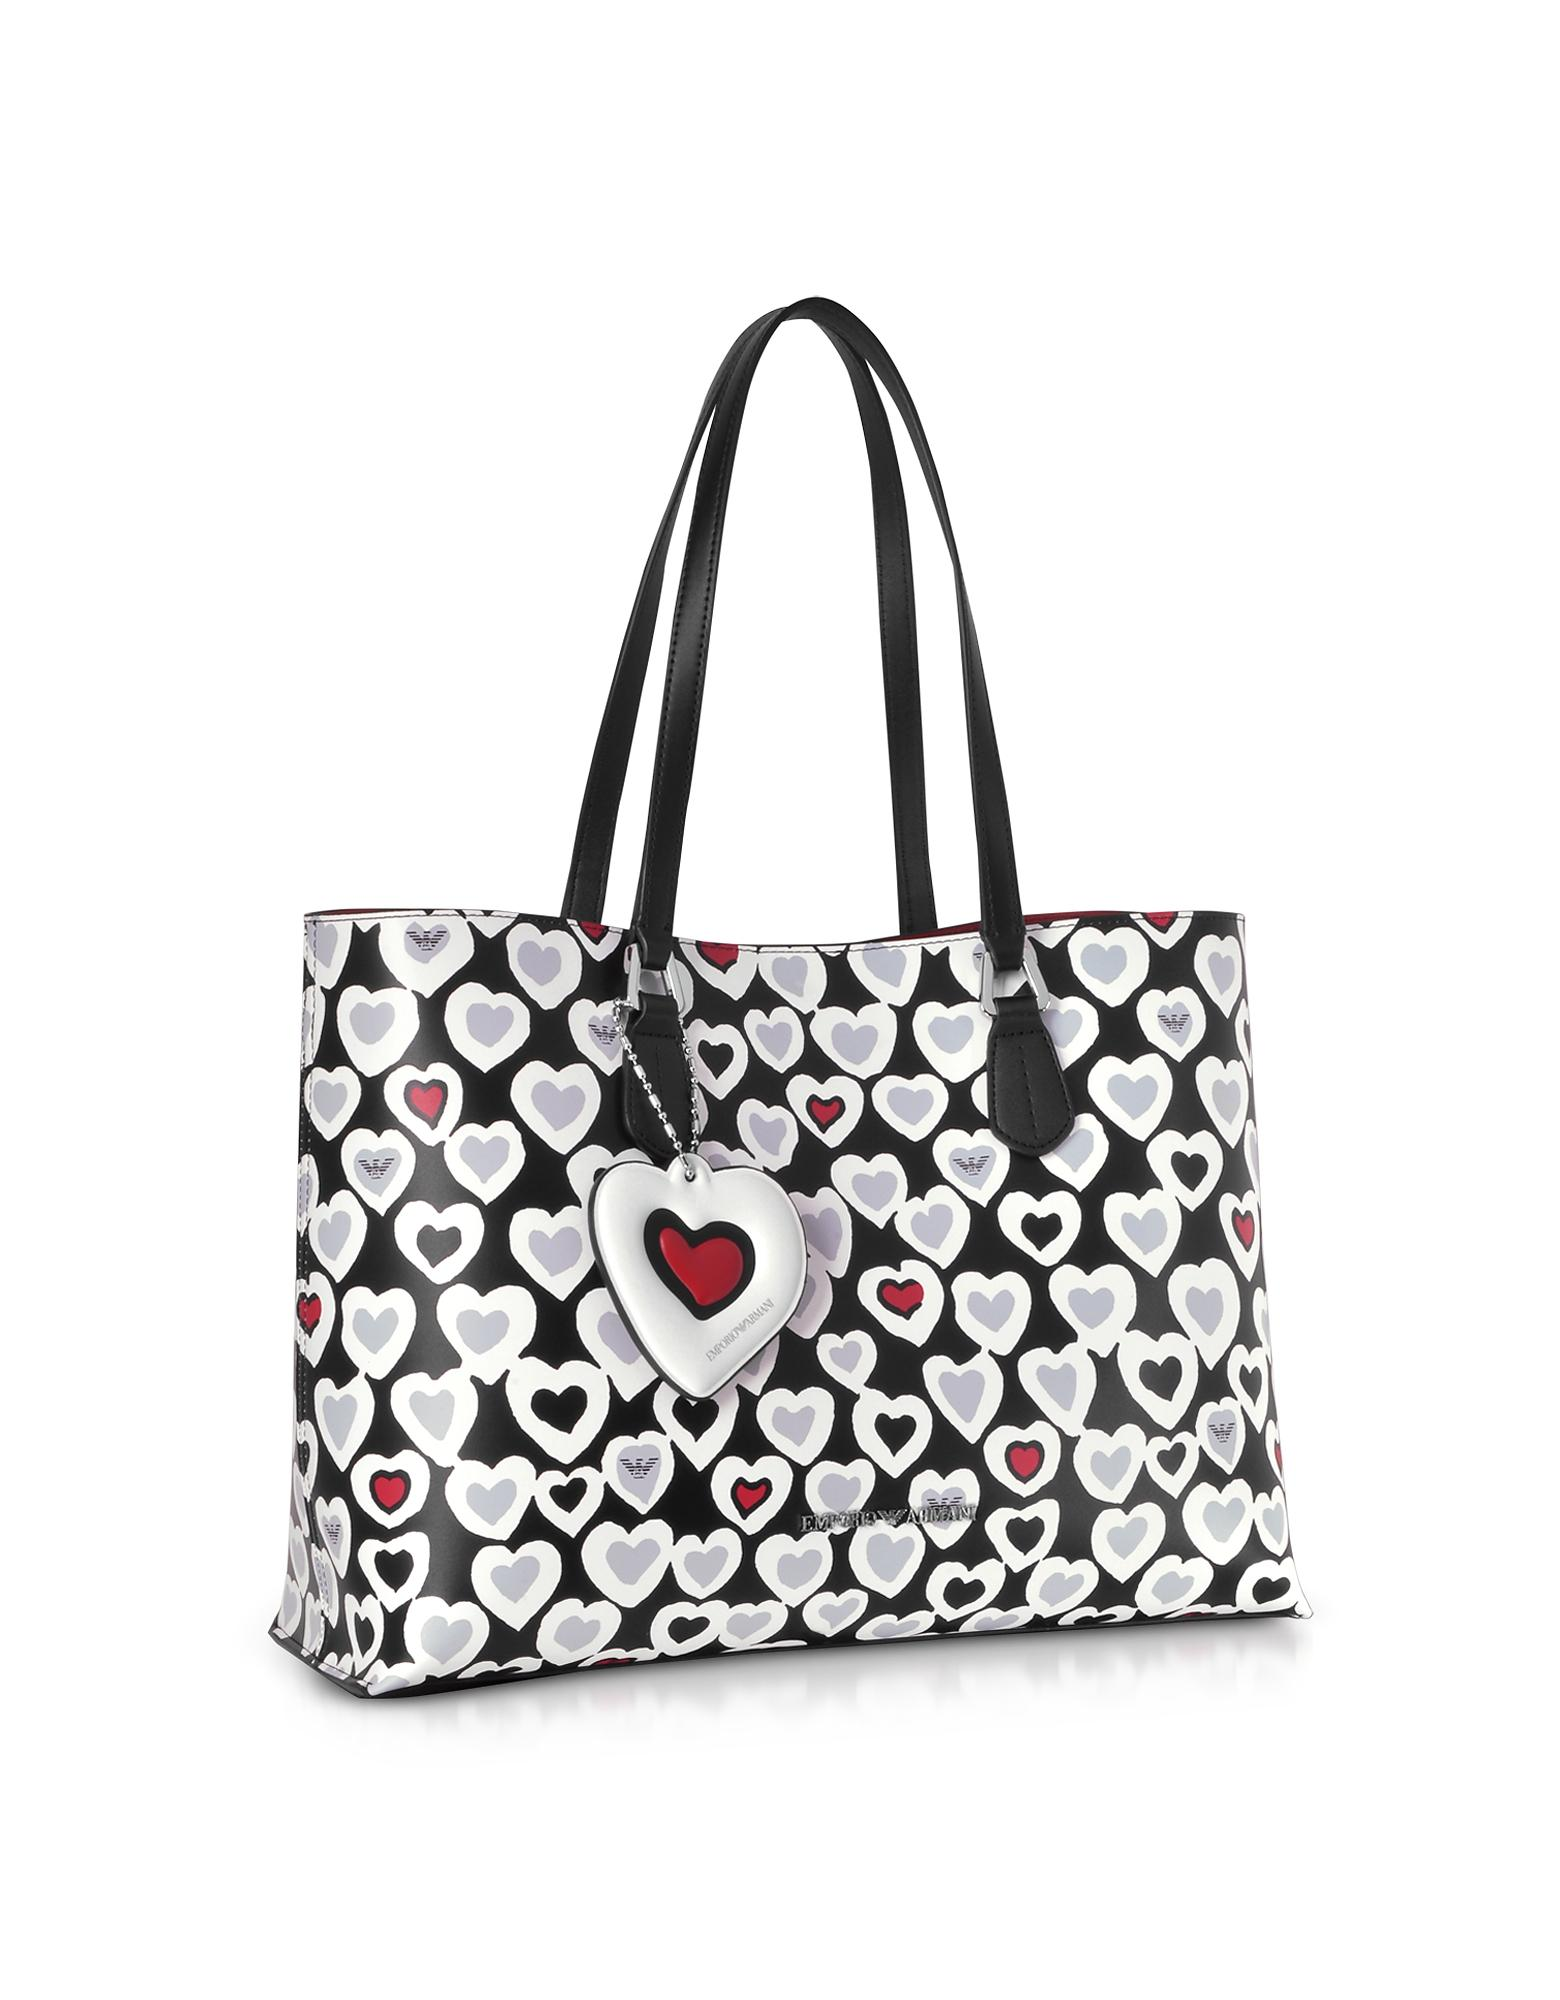 8f93017247f1 Lyst - Emporio Armani Heart Print Tote Bag in Black